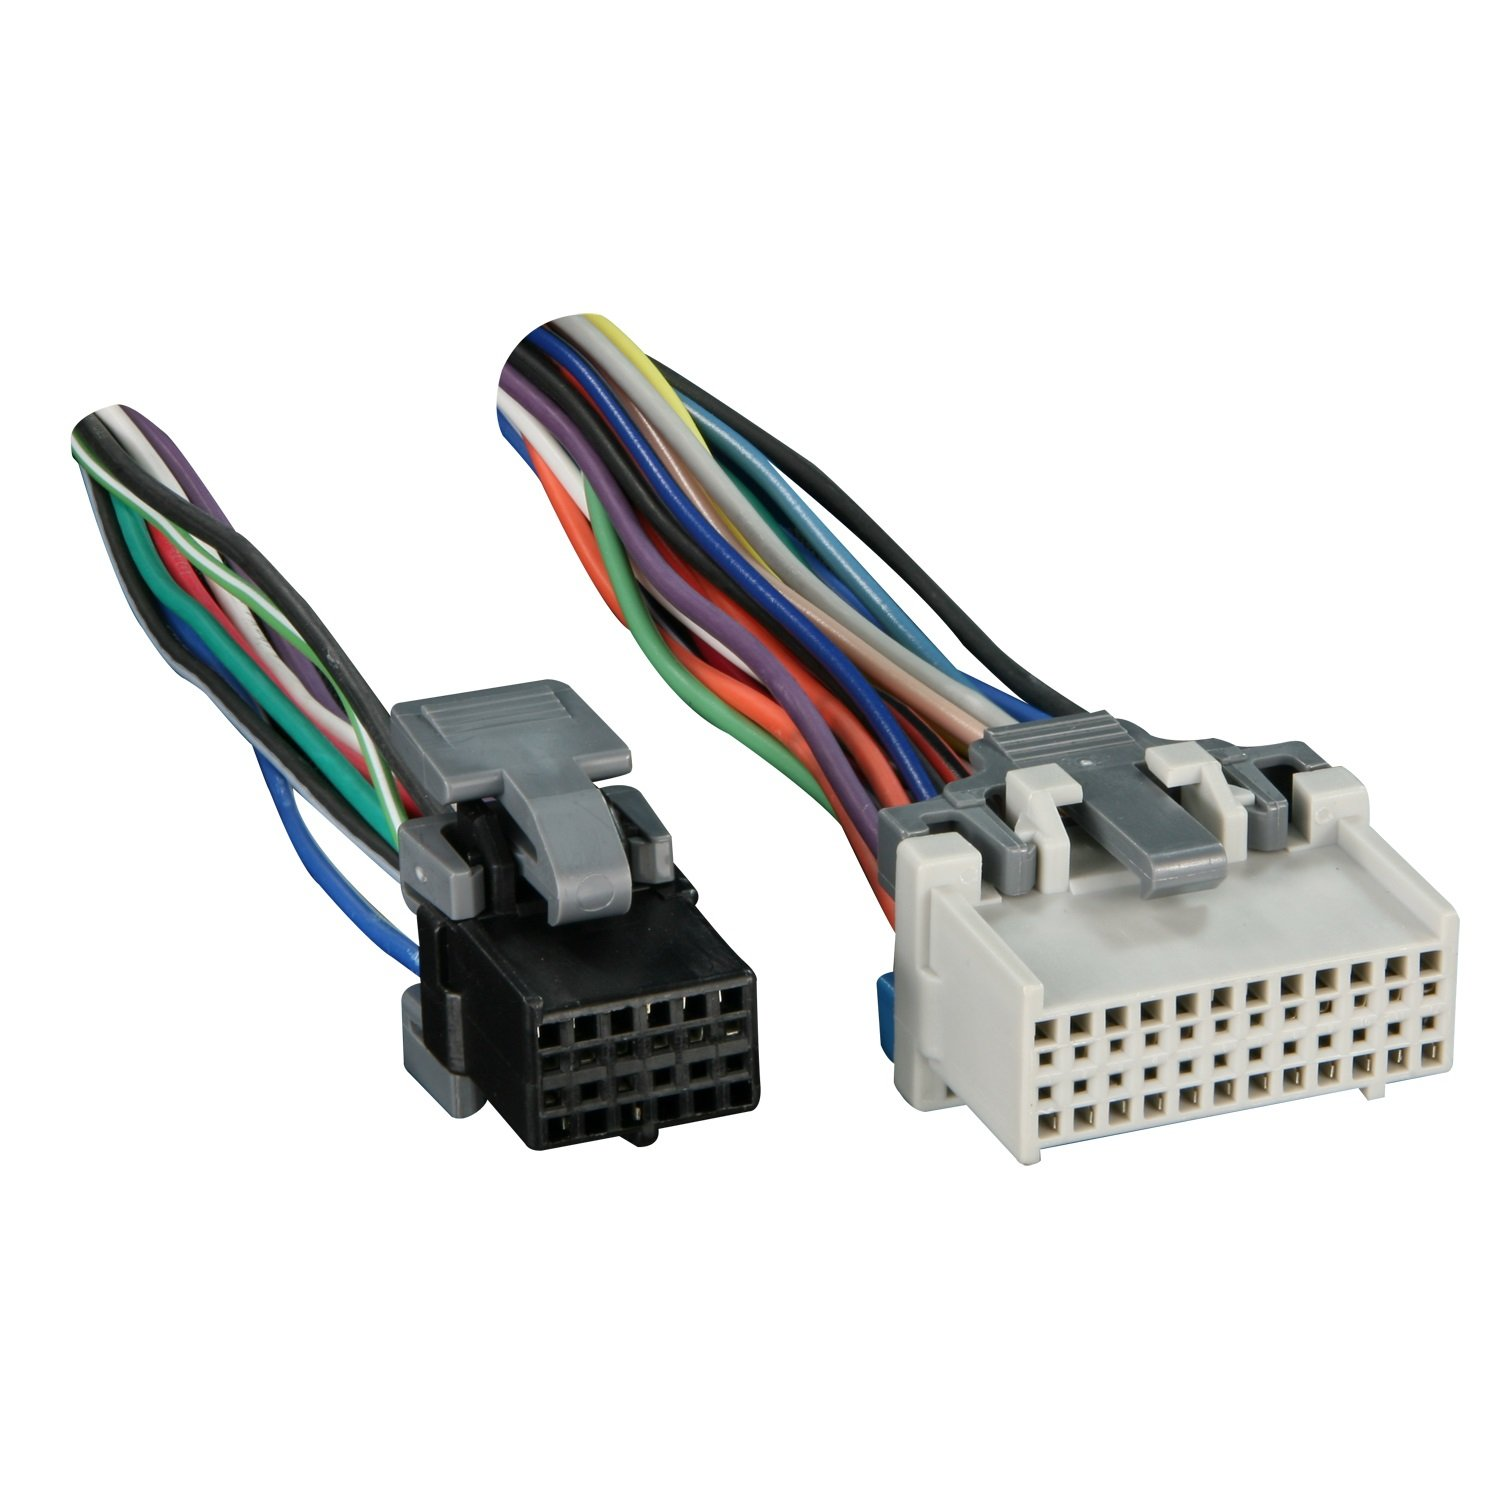 711log4bdML._SL1500_ amazon com metra turbowires 71 2003 1 wiring harness car electronics GM Wiring Color Codes at mifinder.co